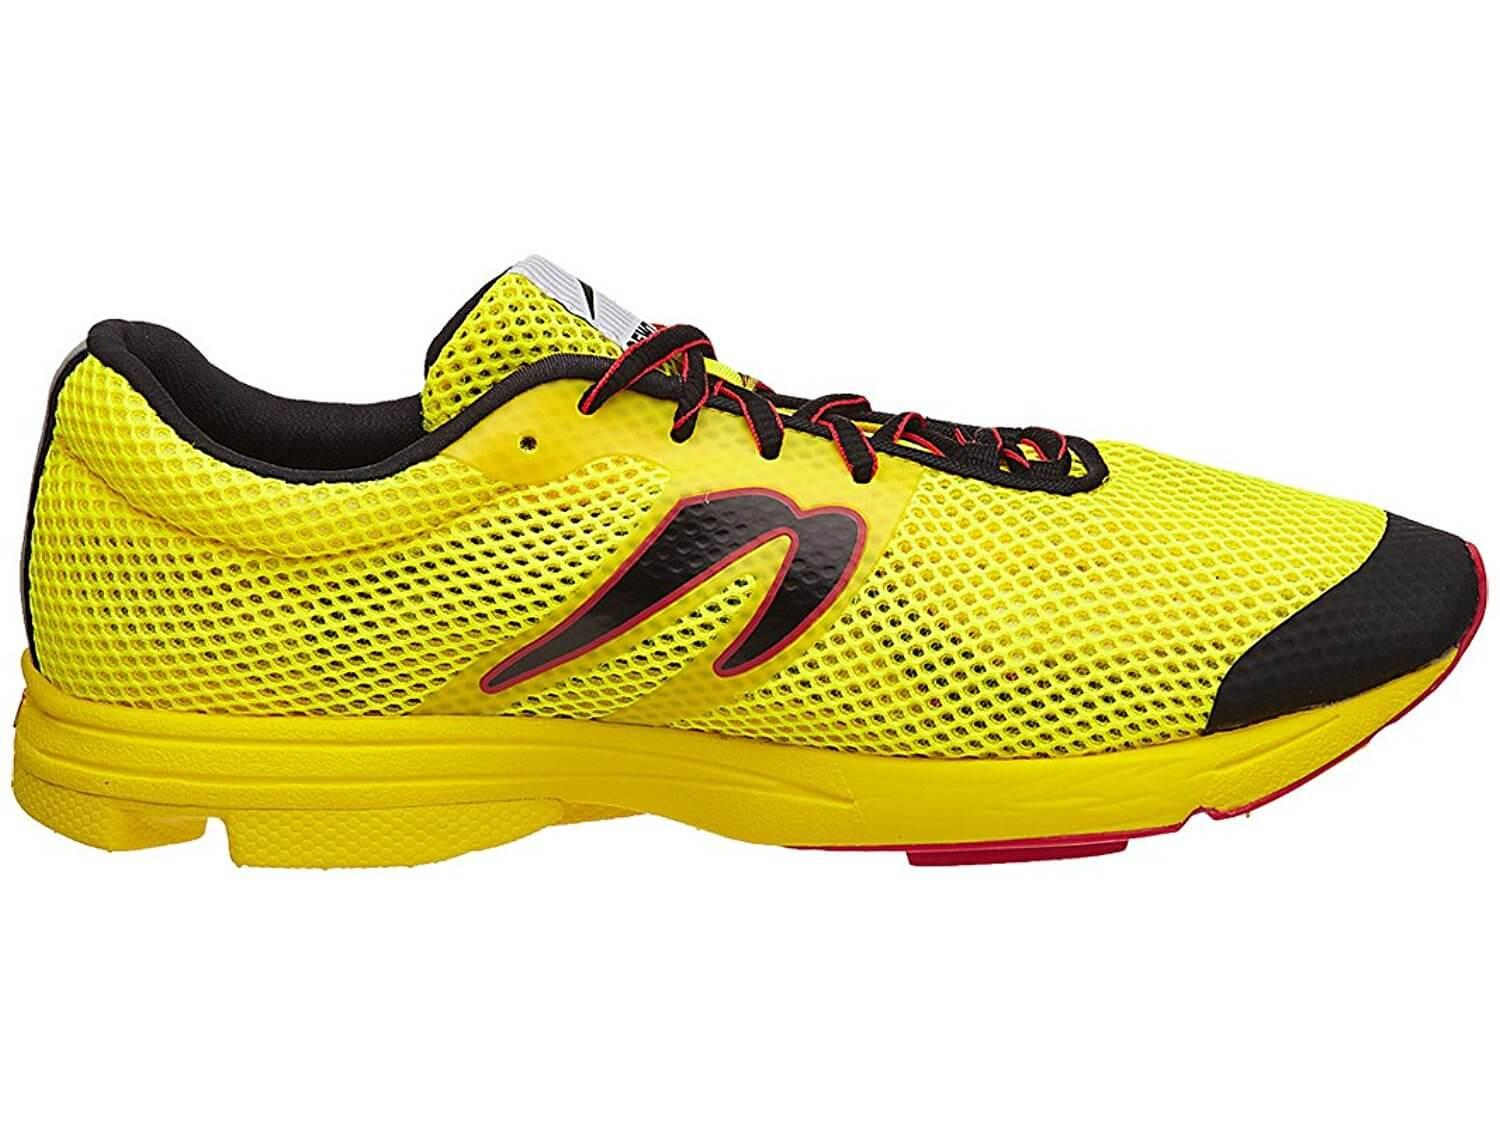 the Newton Distance Elite is a low-cut, low drop running shoe that features great surface control and ground feel